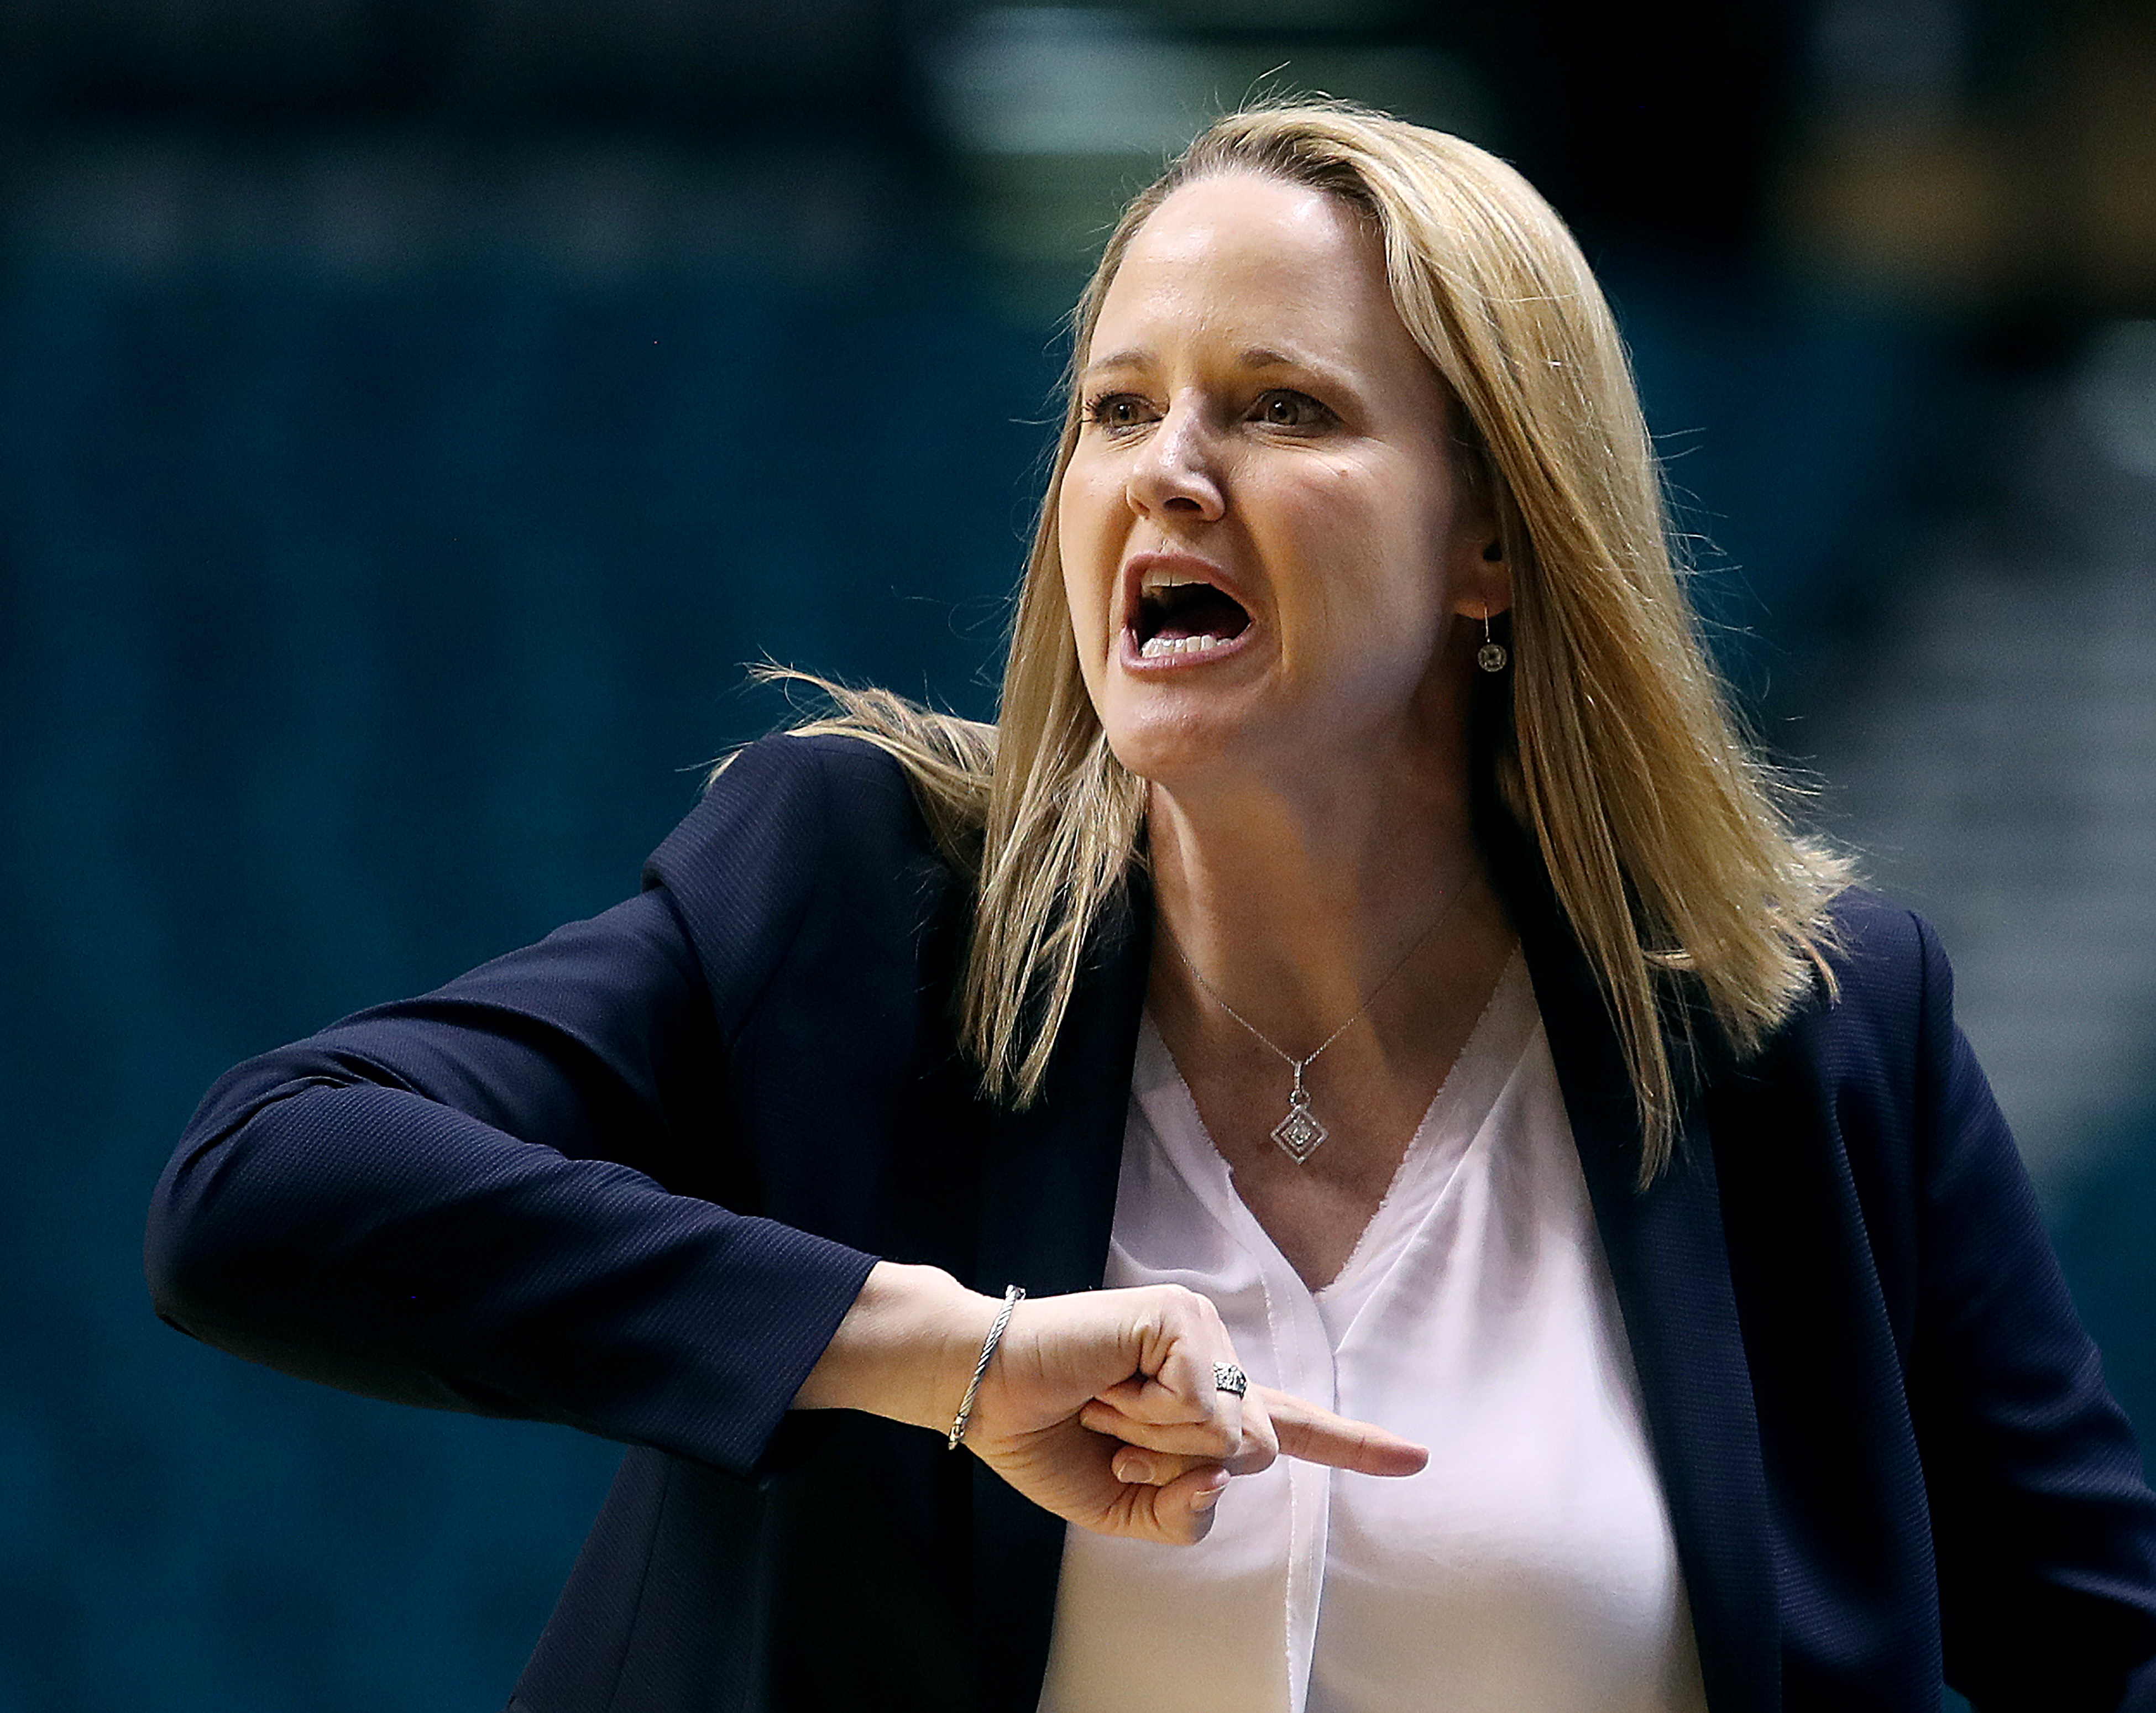 Utah Utes head coach Lynne Roberts directs her team as Utah and Washington play in Pac-12 tournament action at the MGM Grand Garden Arena in Las Vegas on Thursday, March 7, 2019. Washington won 64-54.